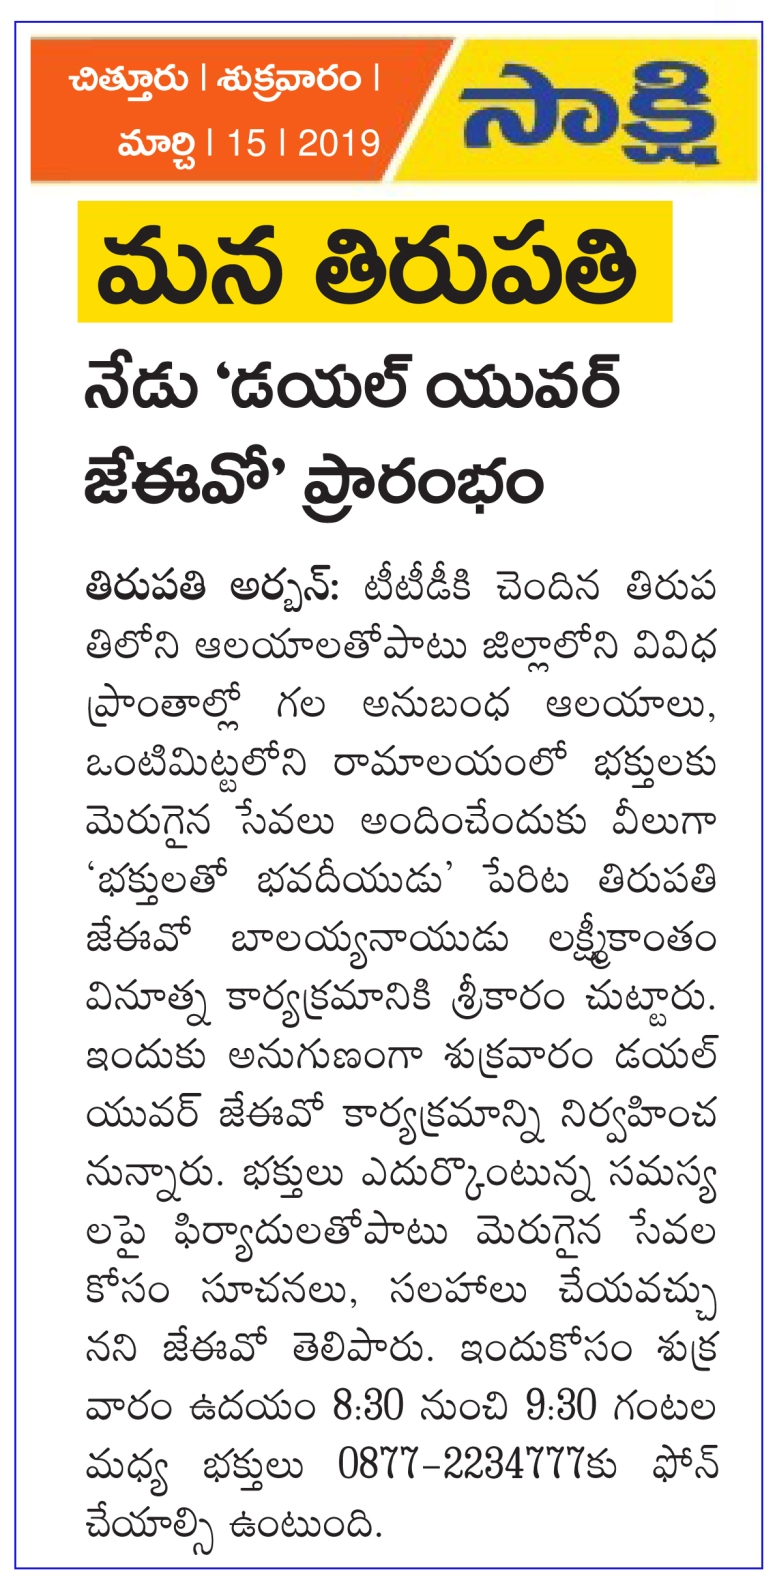 Dail your JEO Sakshi 15-03-2019.jpg